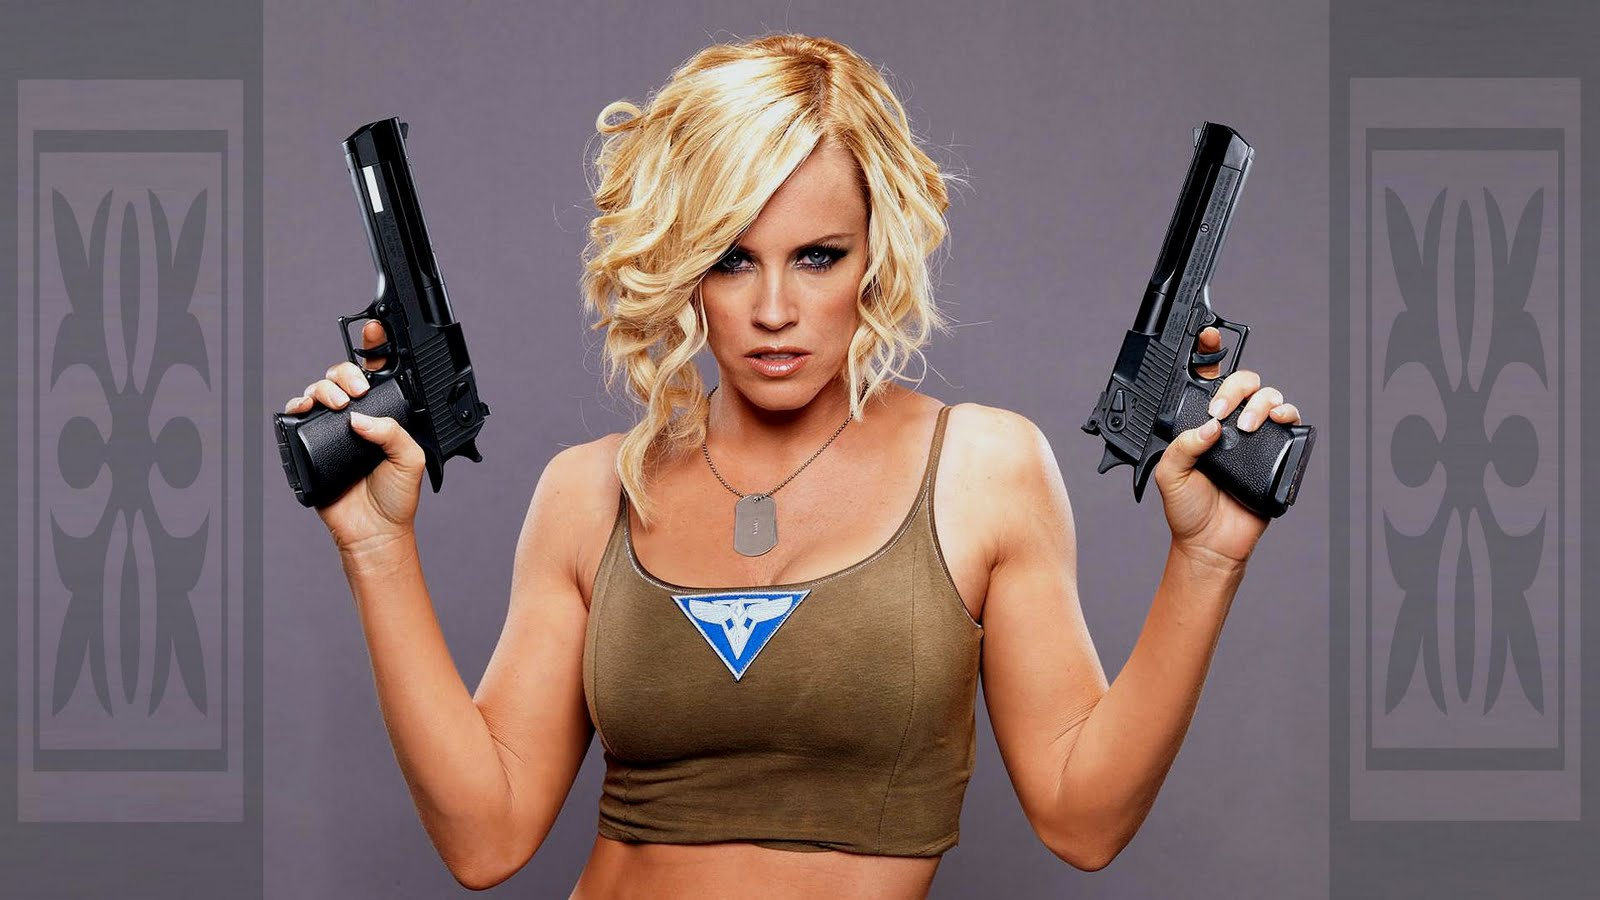 Women With Guns HD Hot Wallpapers Desktop Wallpapers 1600x900